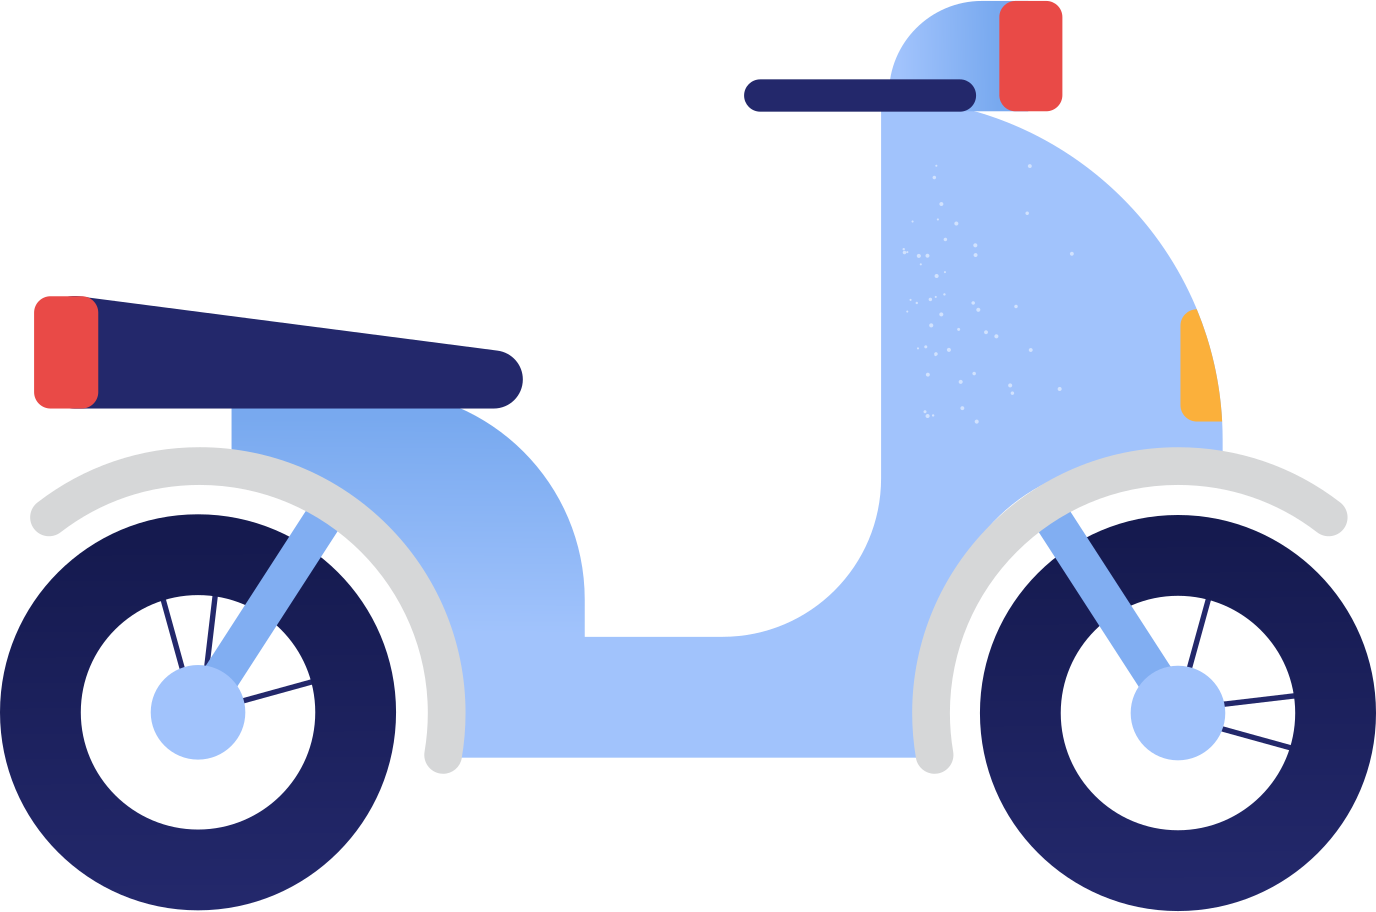 motocycle Clipart illustration in PNG, SVG